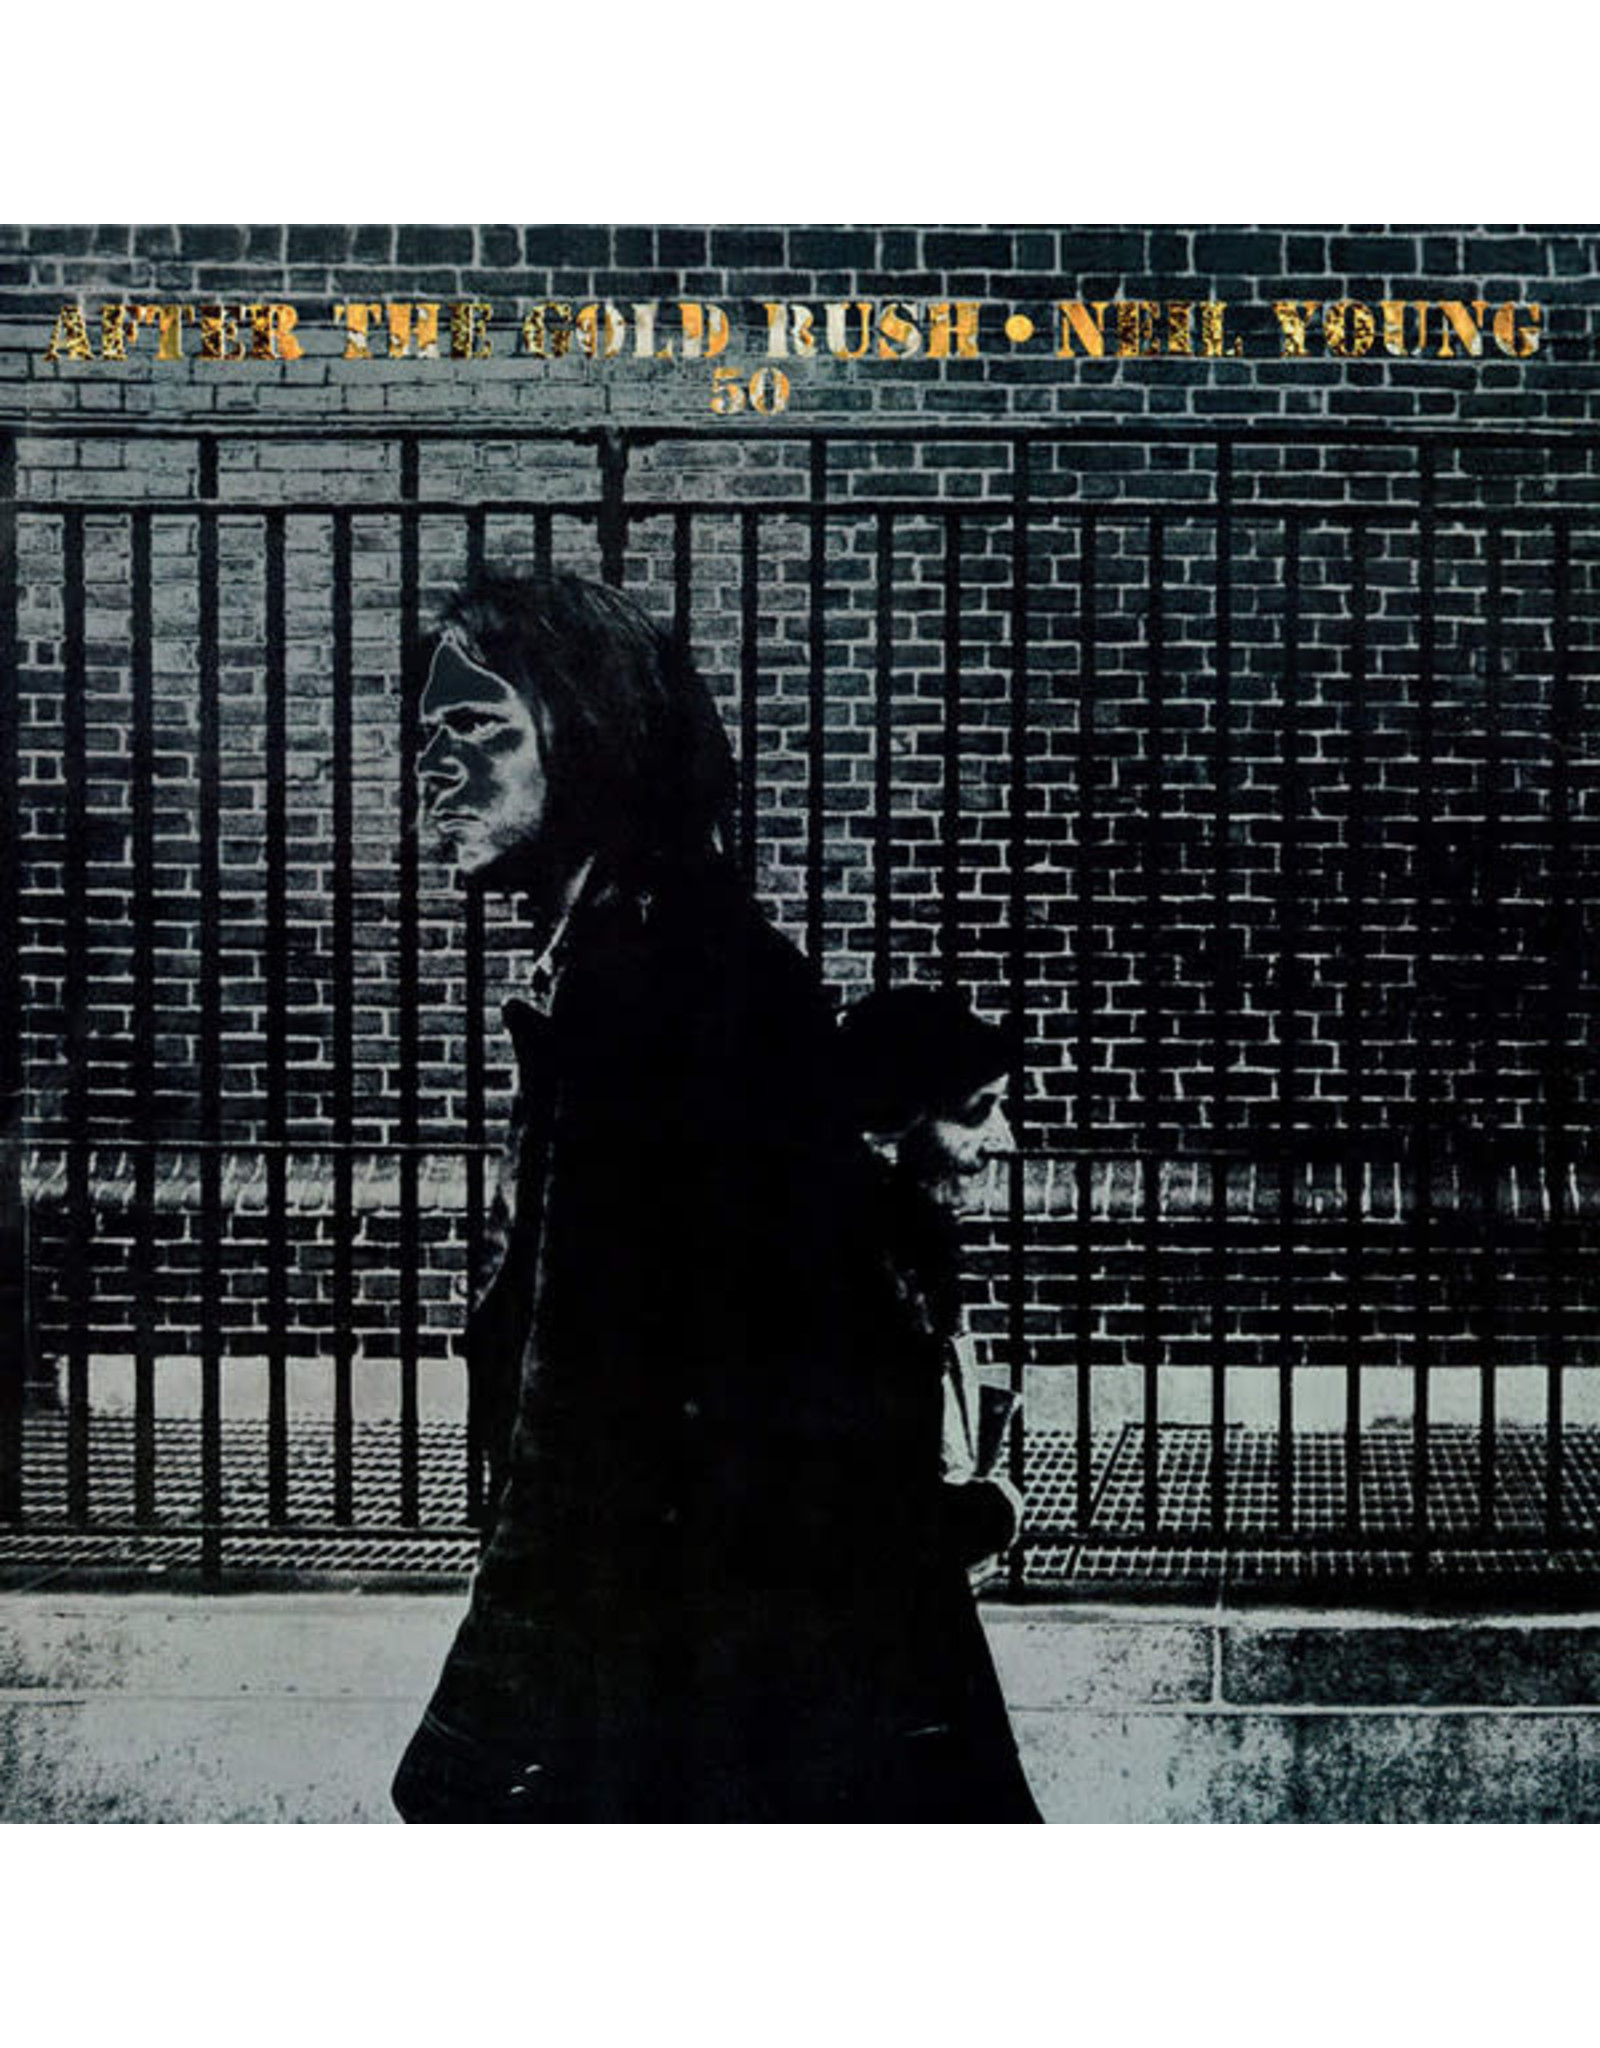 "Neil, Young - After the Goldrush LP + 7"" 50th Anniv. Ltd. Edition"